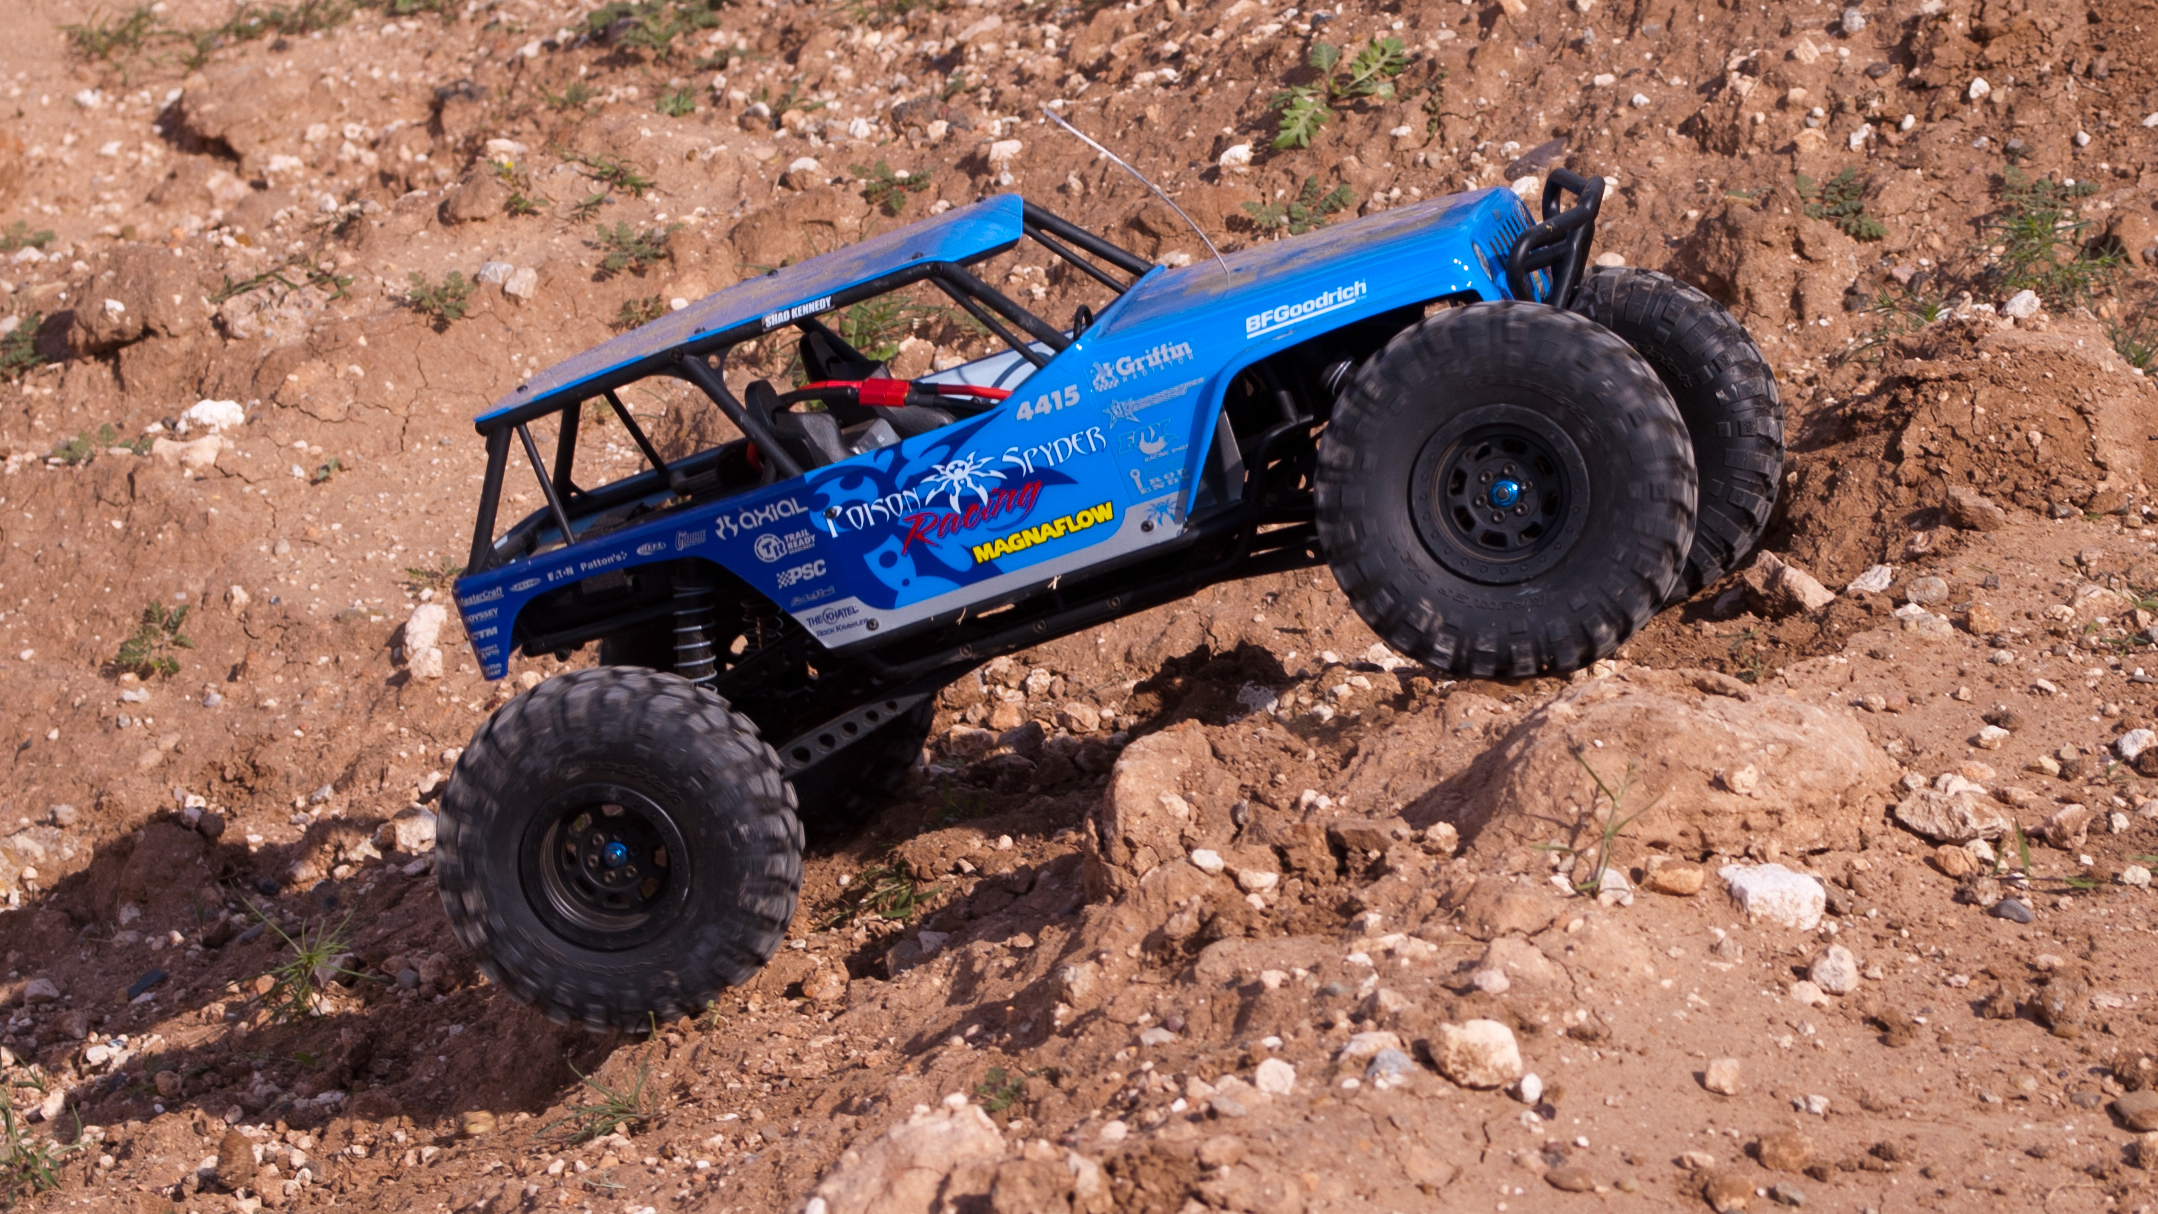 huge rc airplanes with 467579 How Get Hobby Rc Driving Rock Crawlers on 467579 How Get Hobby Rc Driving Rock Crawlers moreover Mammuth Rewarron Giant Rc Car Truck moreover 32378748823 in addition Meet Dusty Crophopper Star Of Disney Planes together with